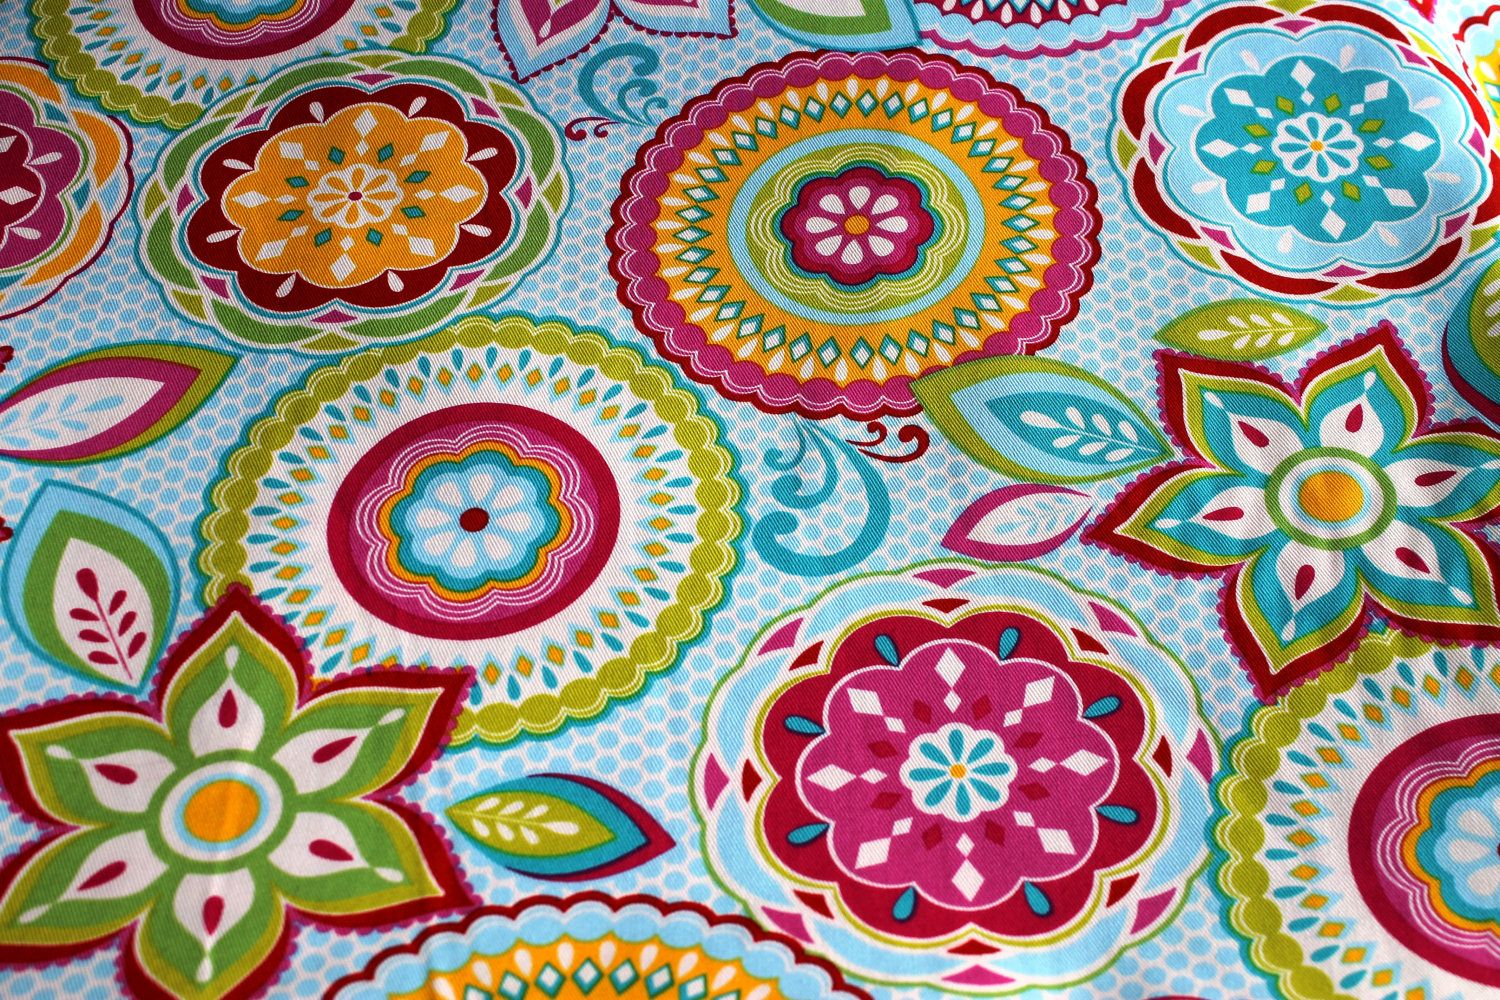 Colorful, Floral, Brother Sister Design Studio Fabric, 1